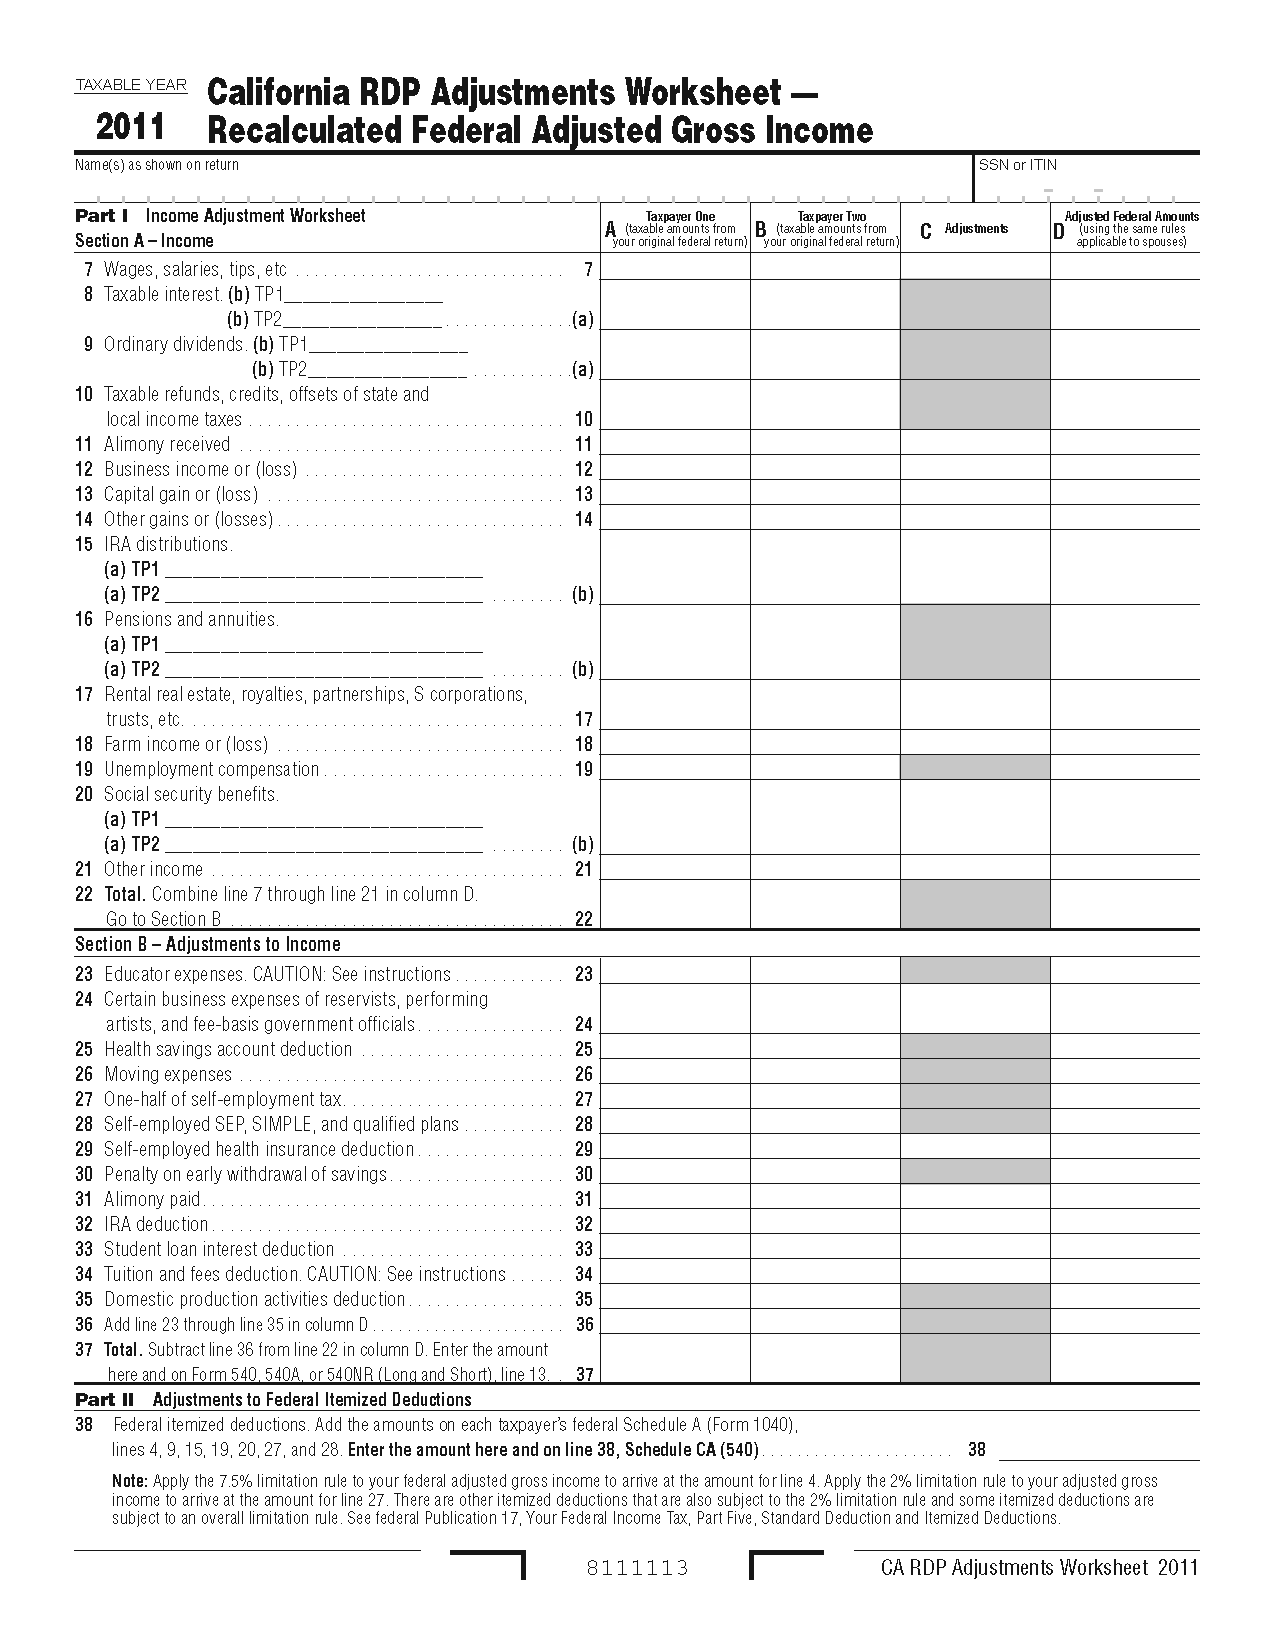 Worksheets Itemized Deductions Worksheet 737 worksheet form california registered domestic partners adjustments recalculated federal adjusted gross income